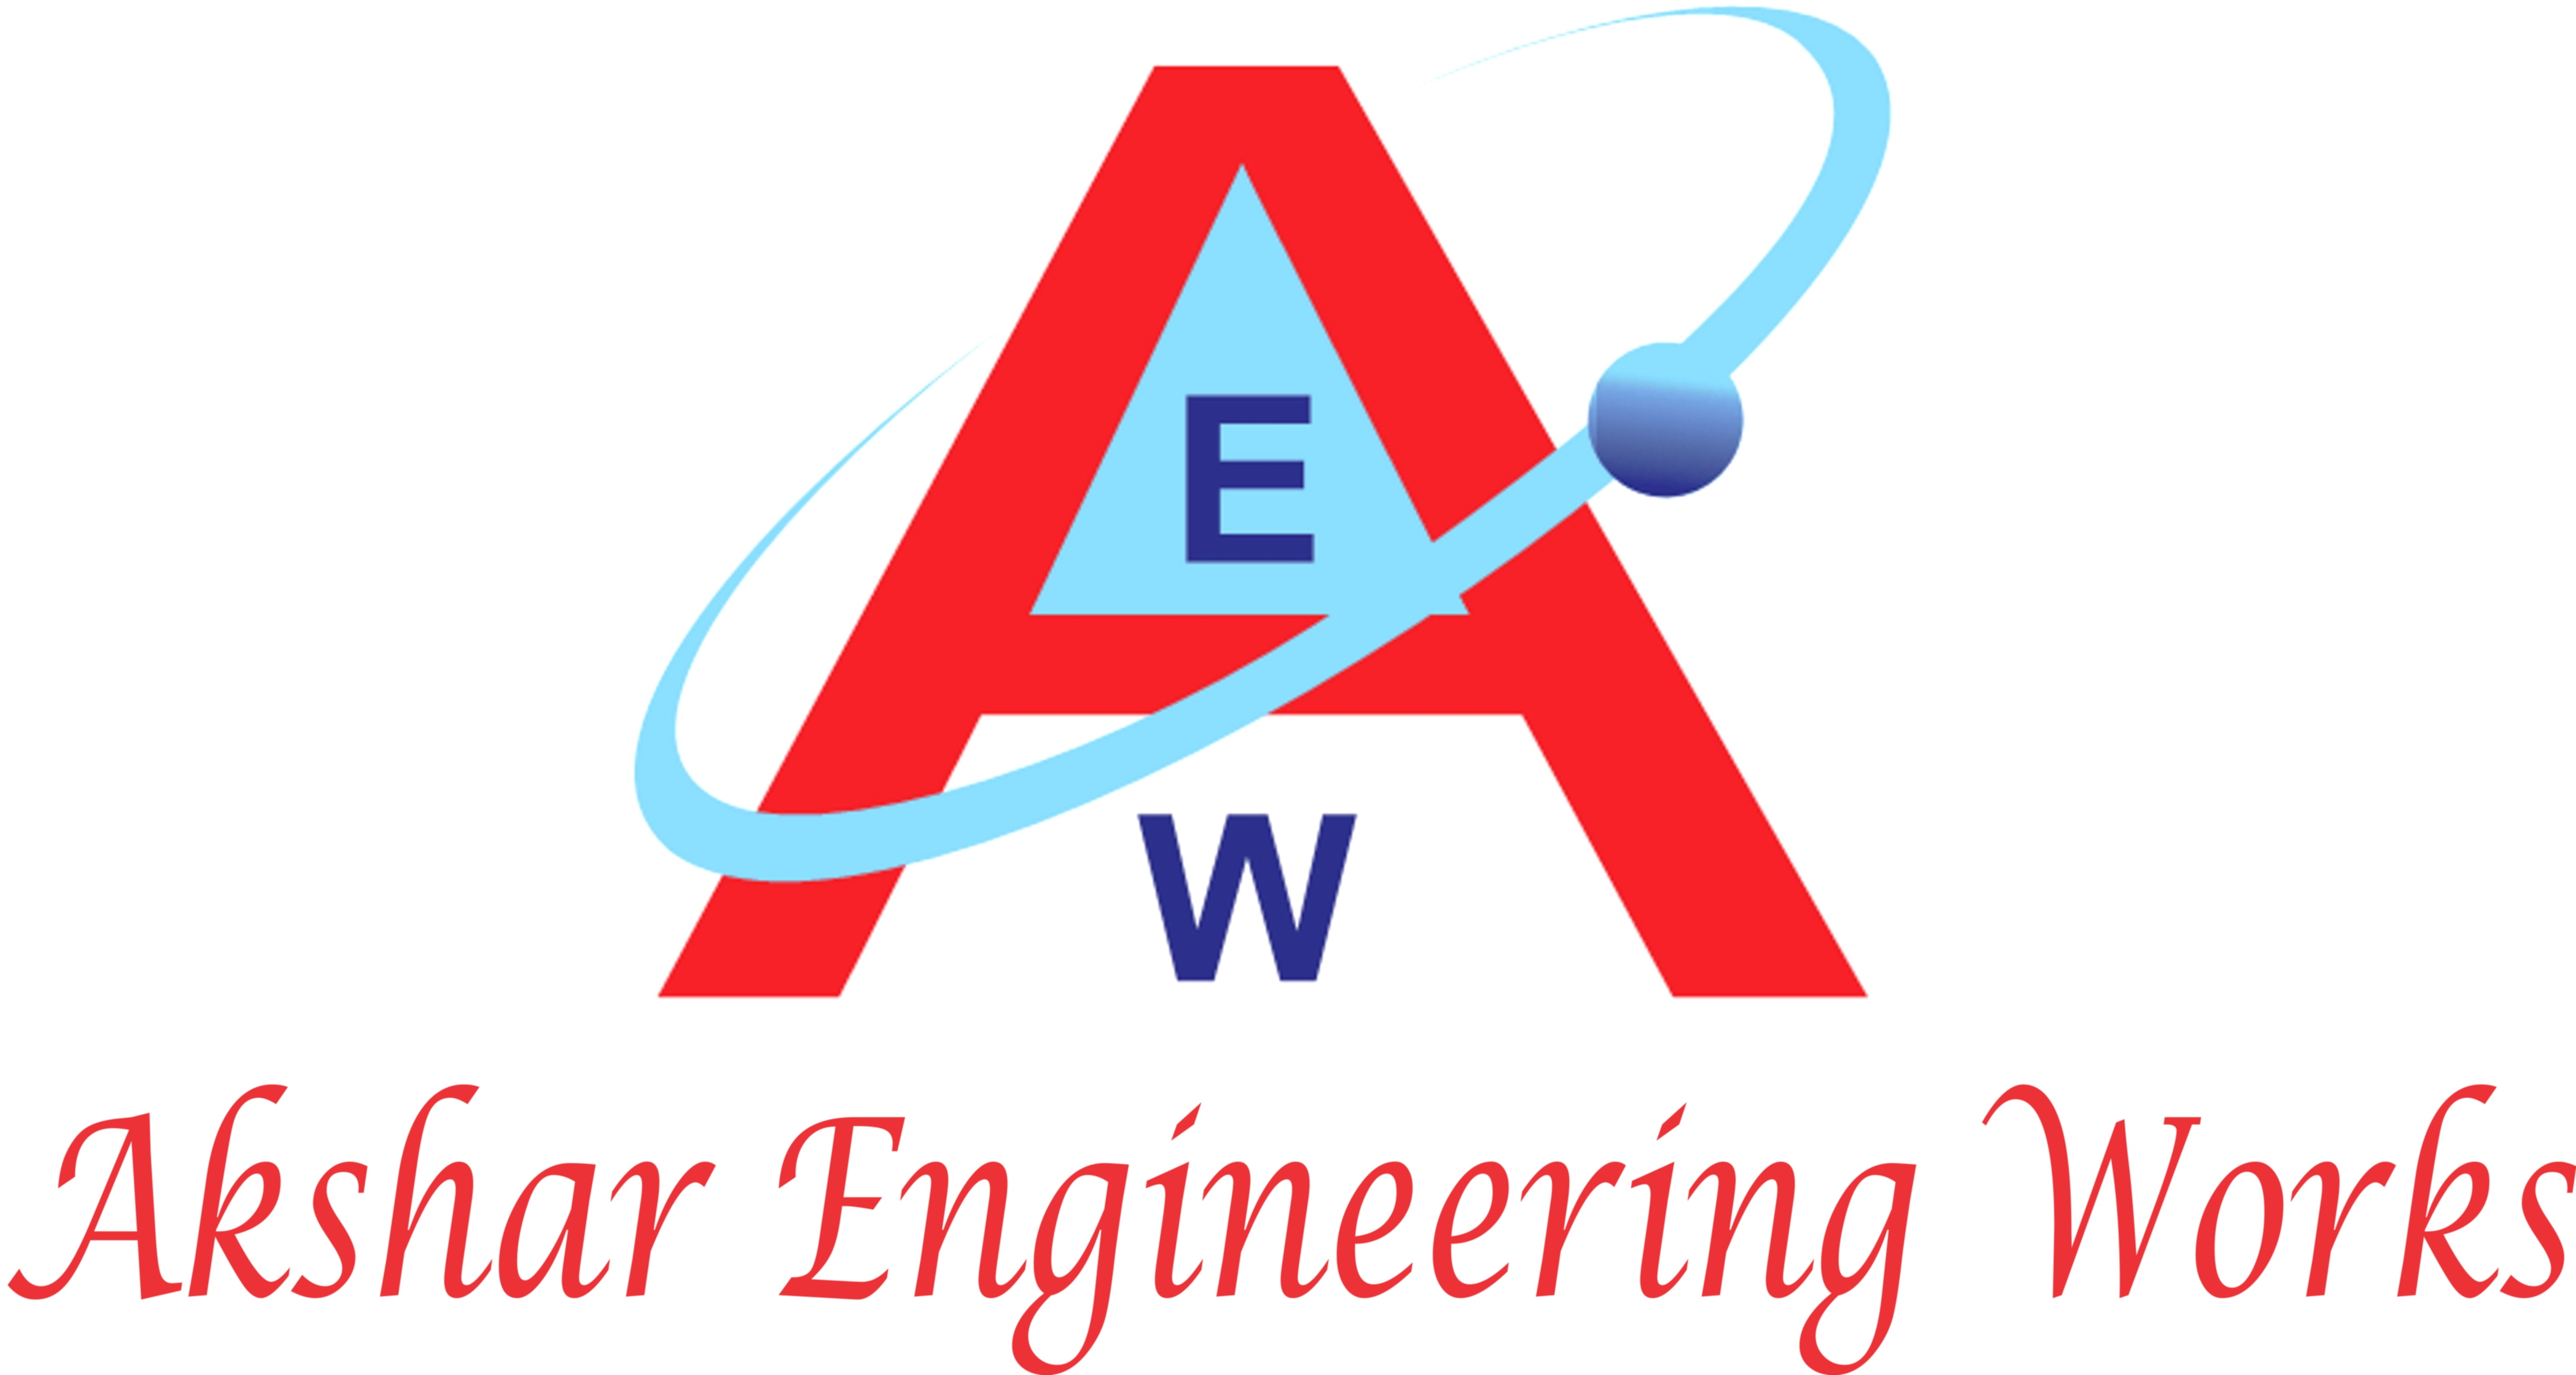 Akshar Engineering Works - Akshar Engineering Works